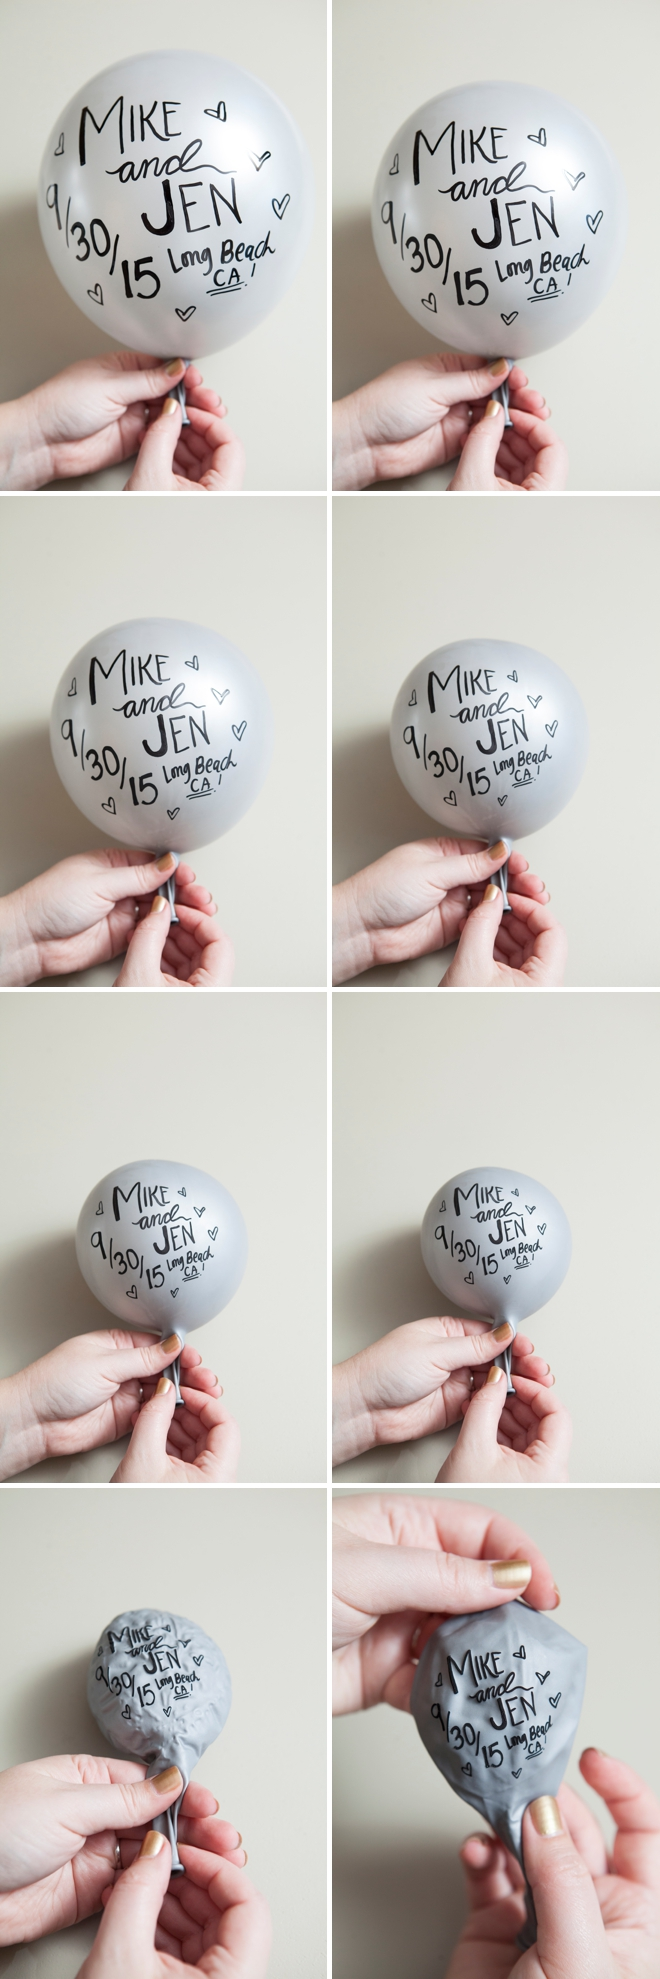 writing on balloons with sharpie